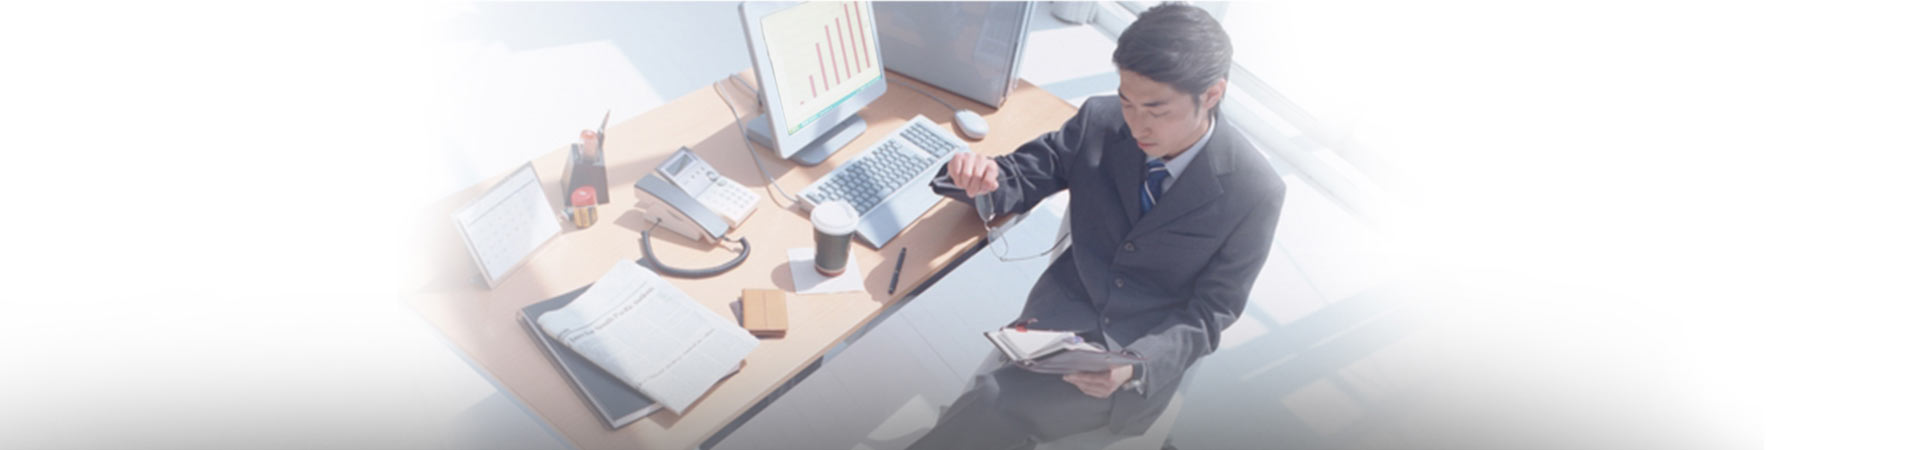 productivity with SafeComs through our IT outsourcing, IT Consulting   Bangkok   Thailand